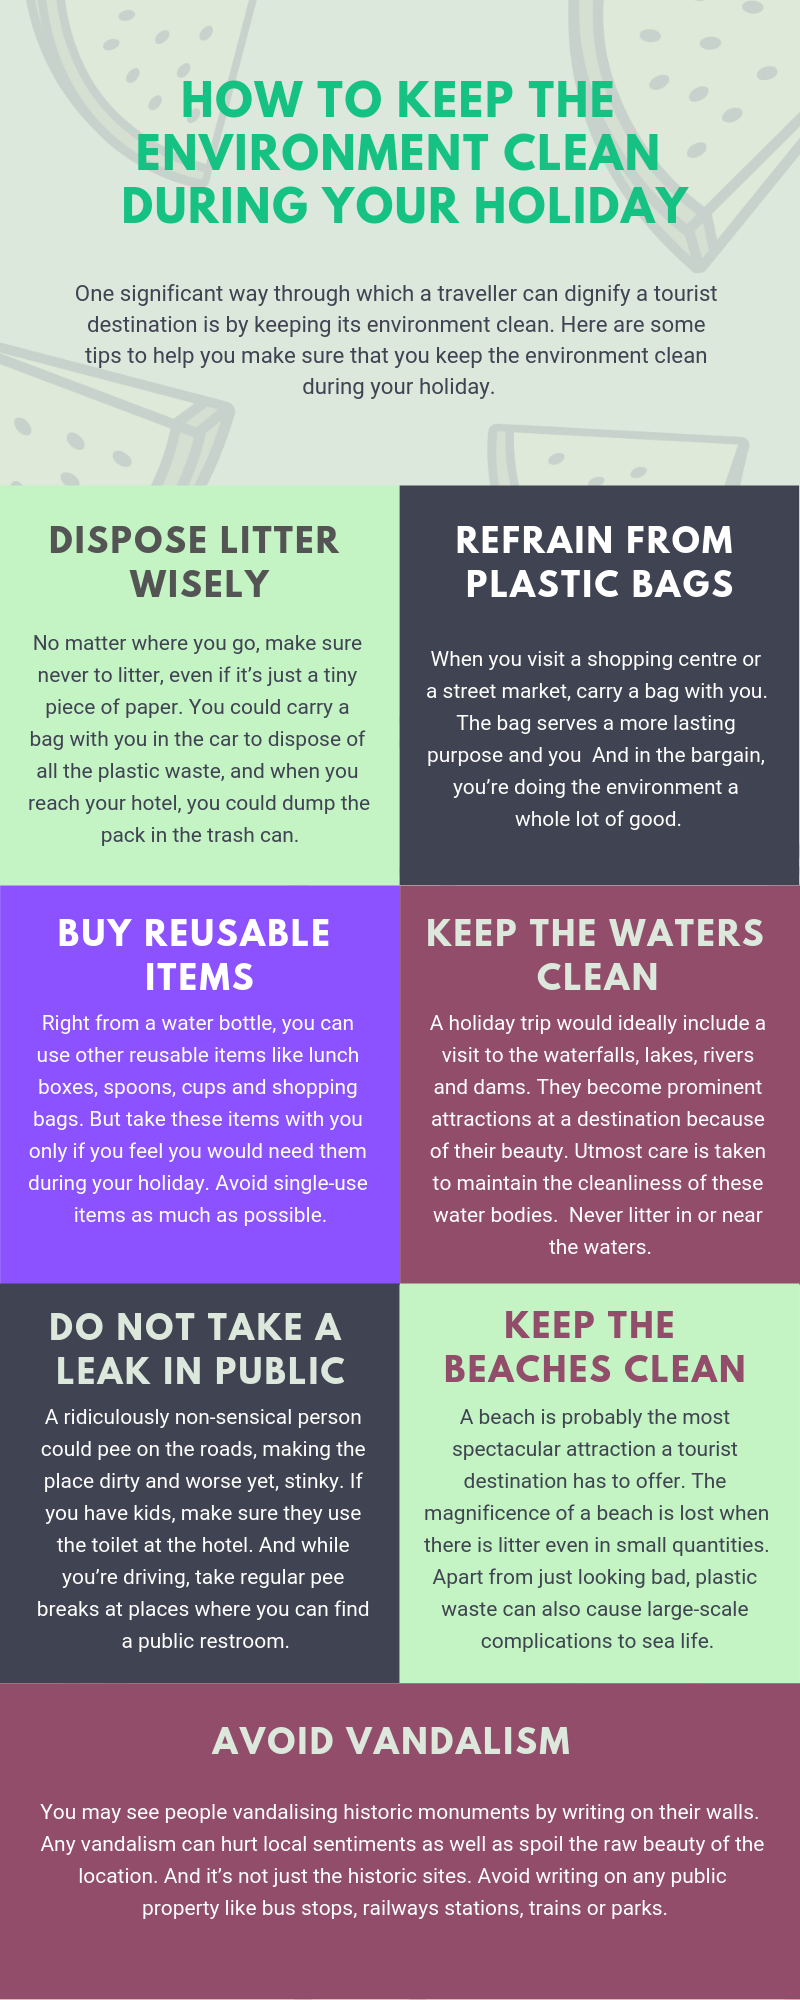 tips to keep the environment clean